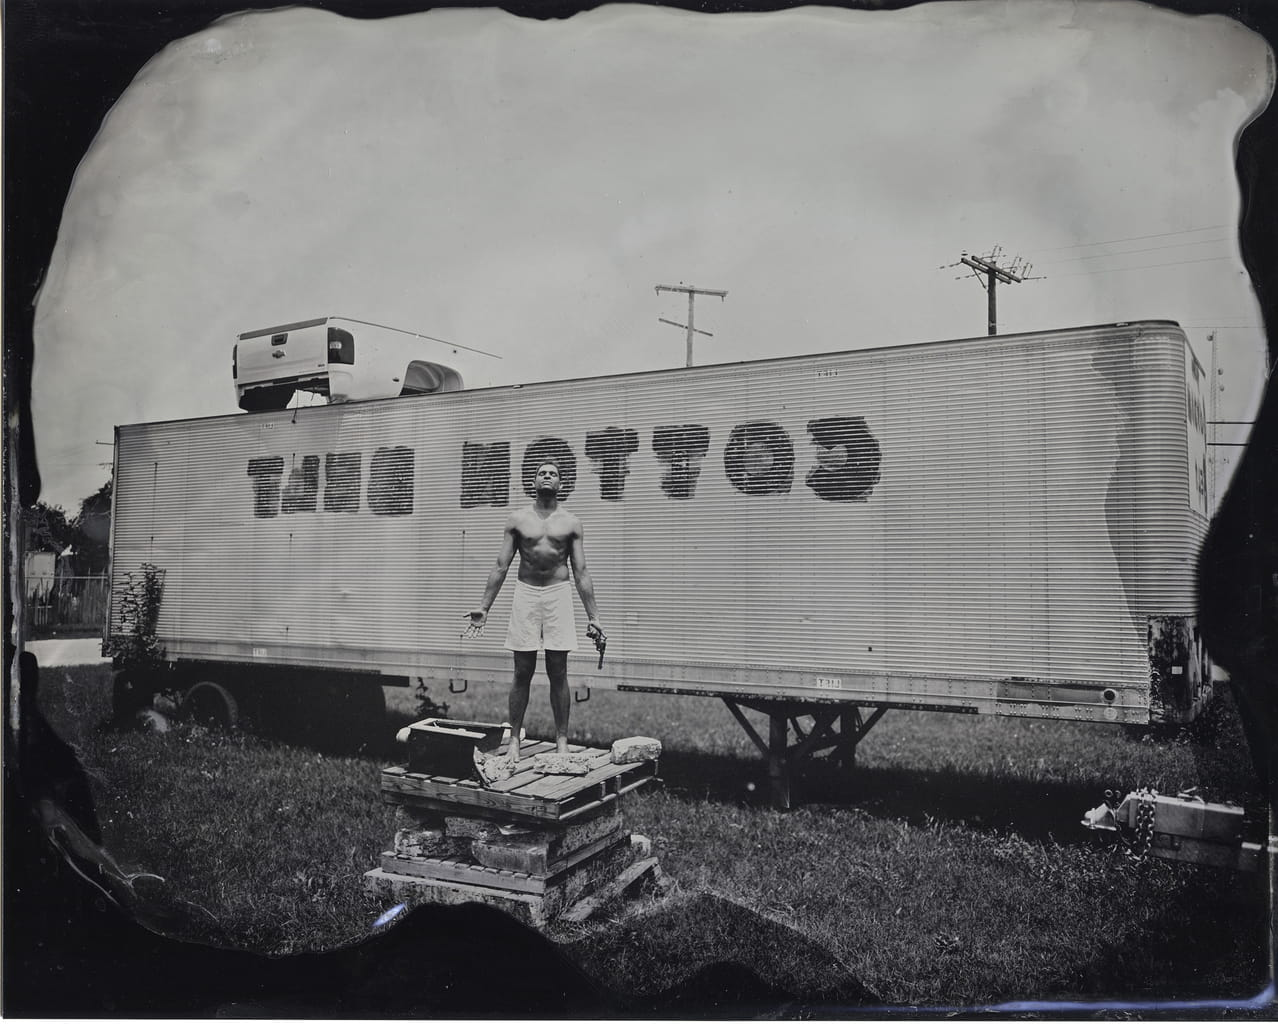 Adam W. McKinney, as Mr. Fred Rouse, standing in the site in which Mr. Rouse was lynched (Fort Worth, TX, 1921). From the series SCAB.